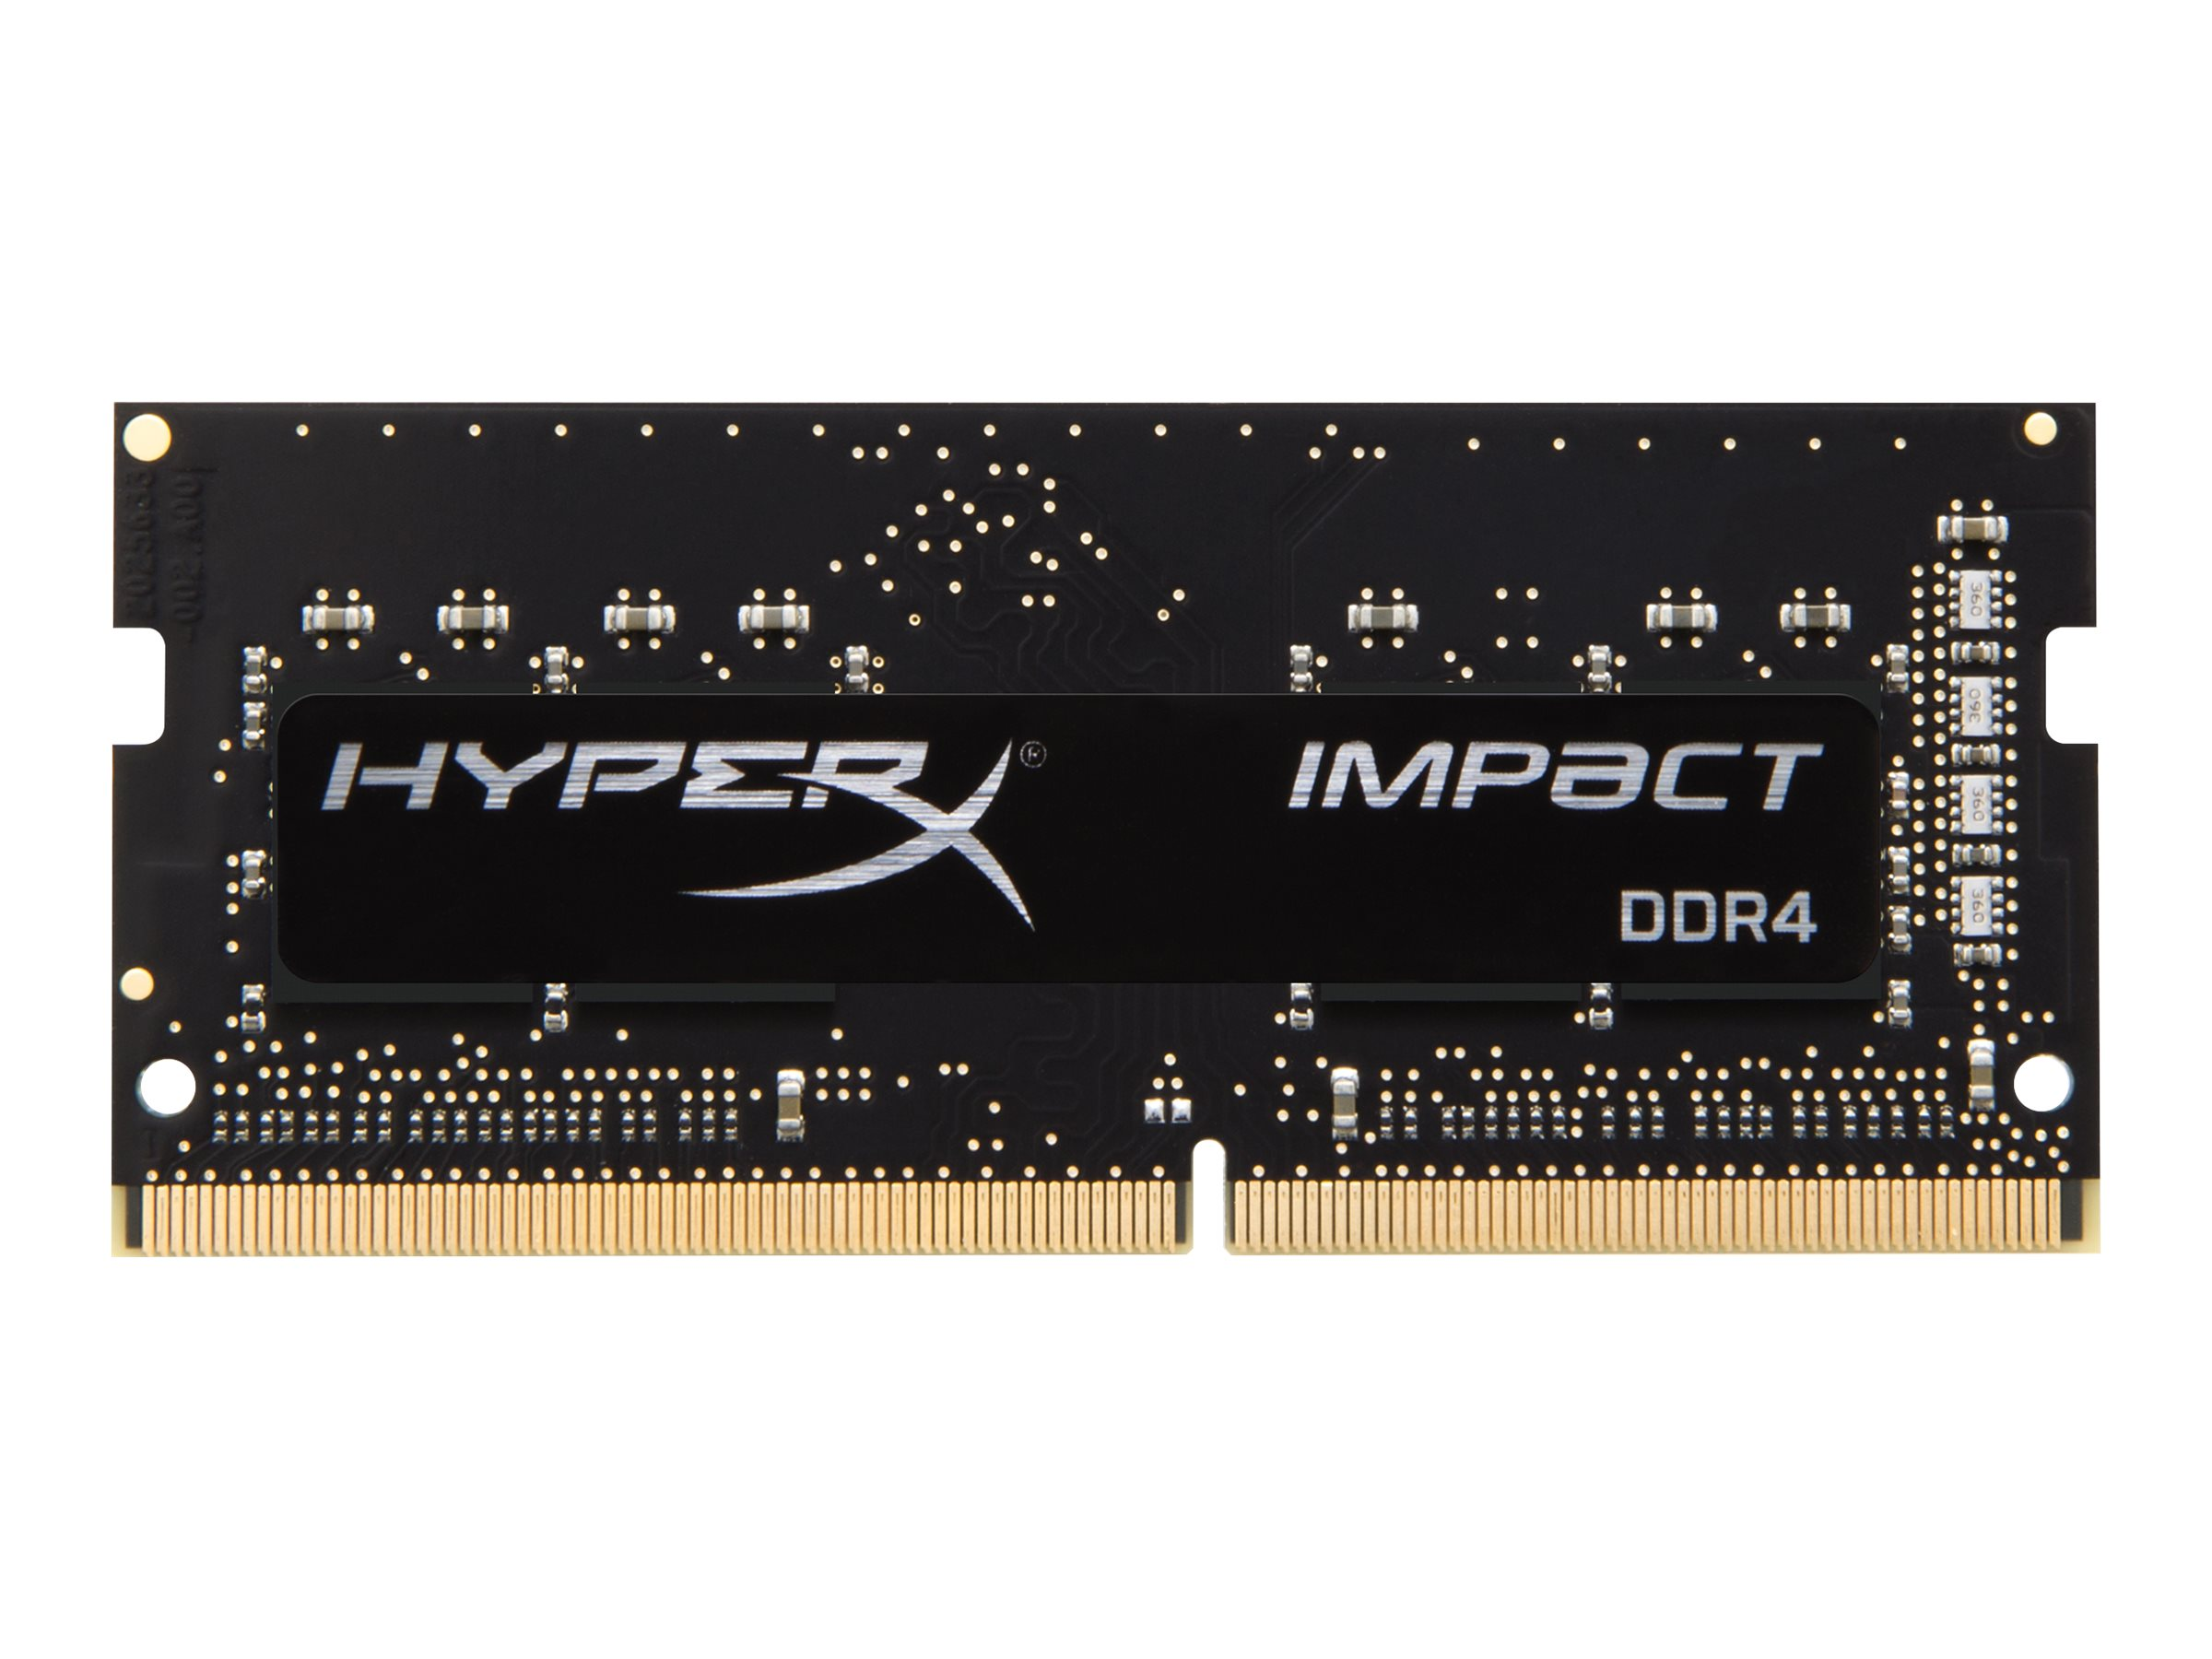 Kingston 8GB PC4-19200 260-pin DDR4 SDRAM SODIMM Kit